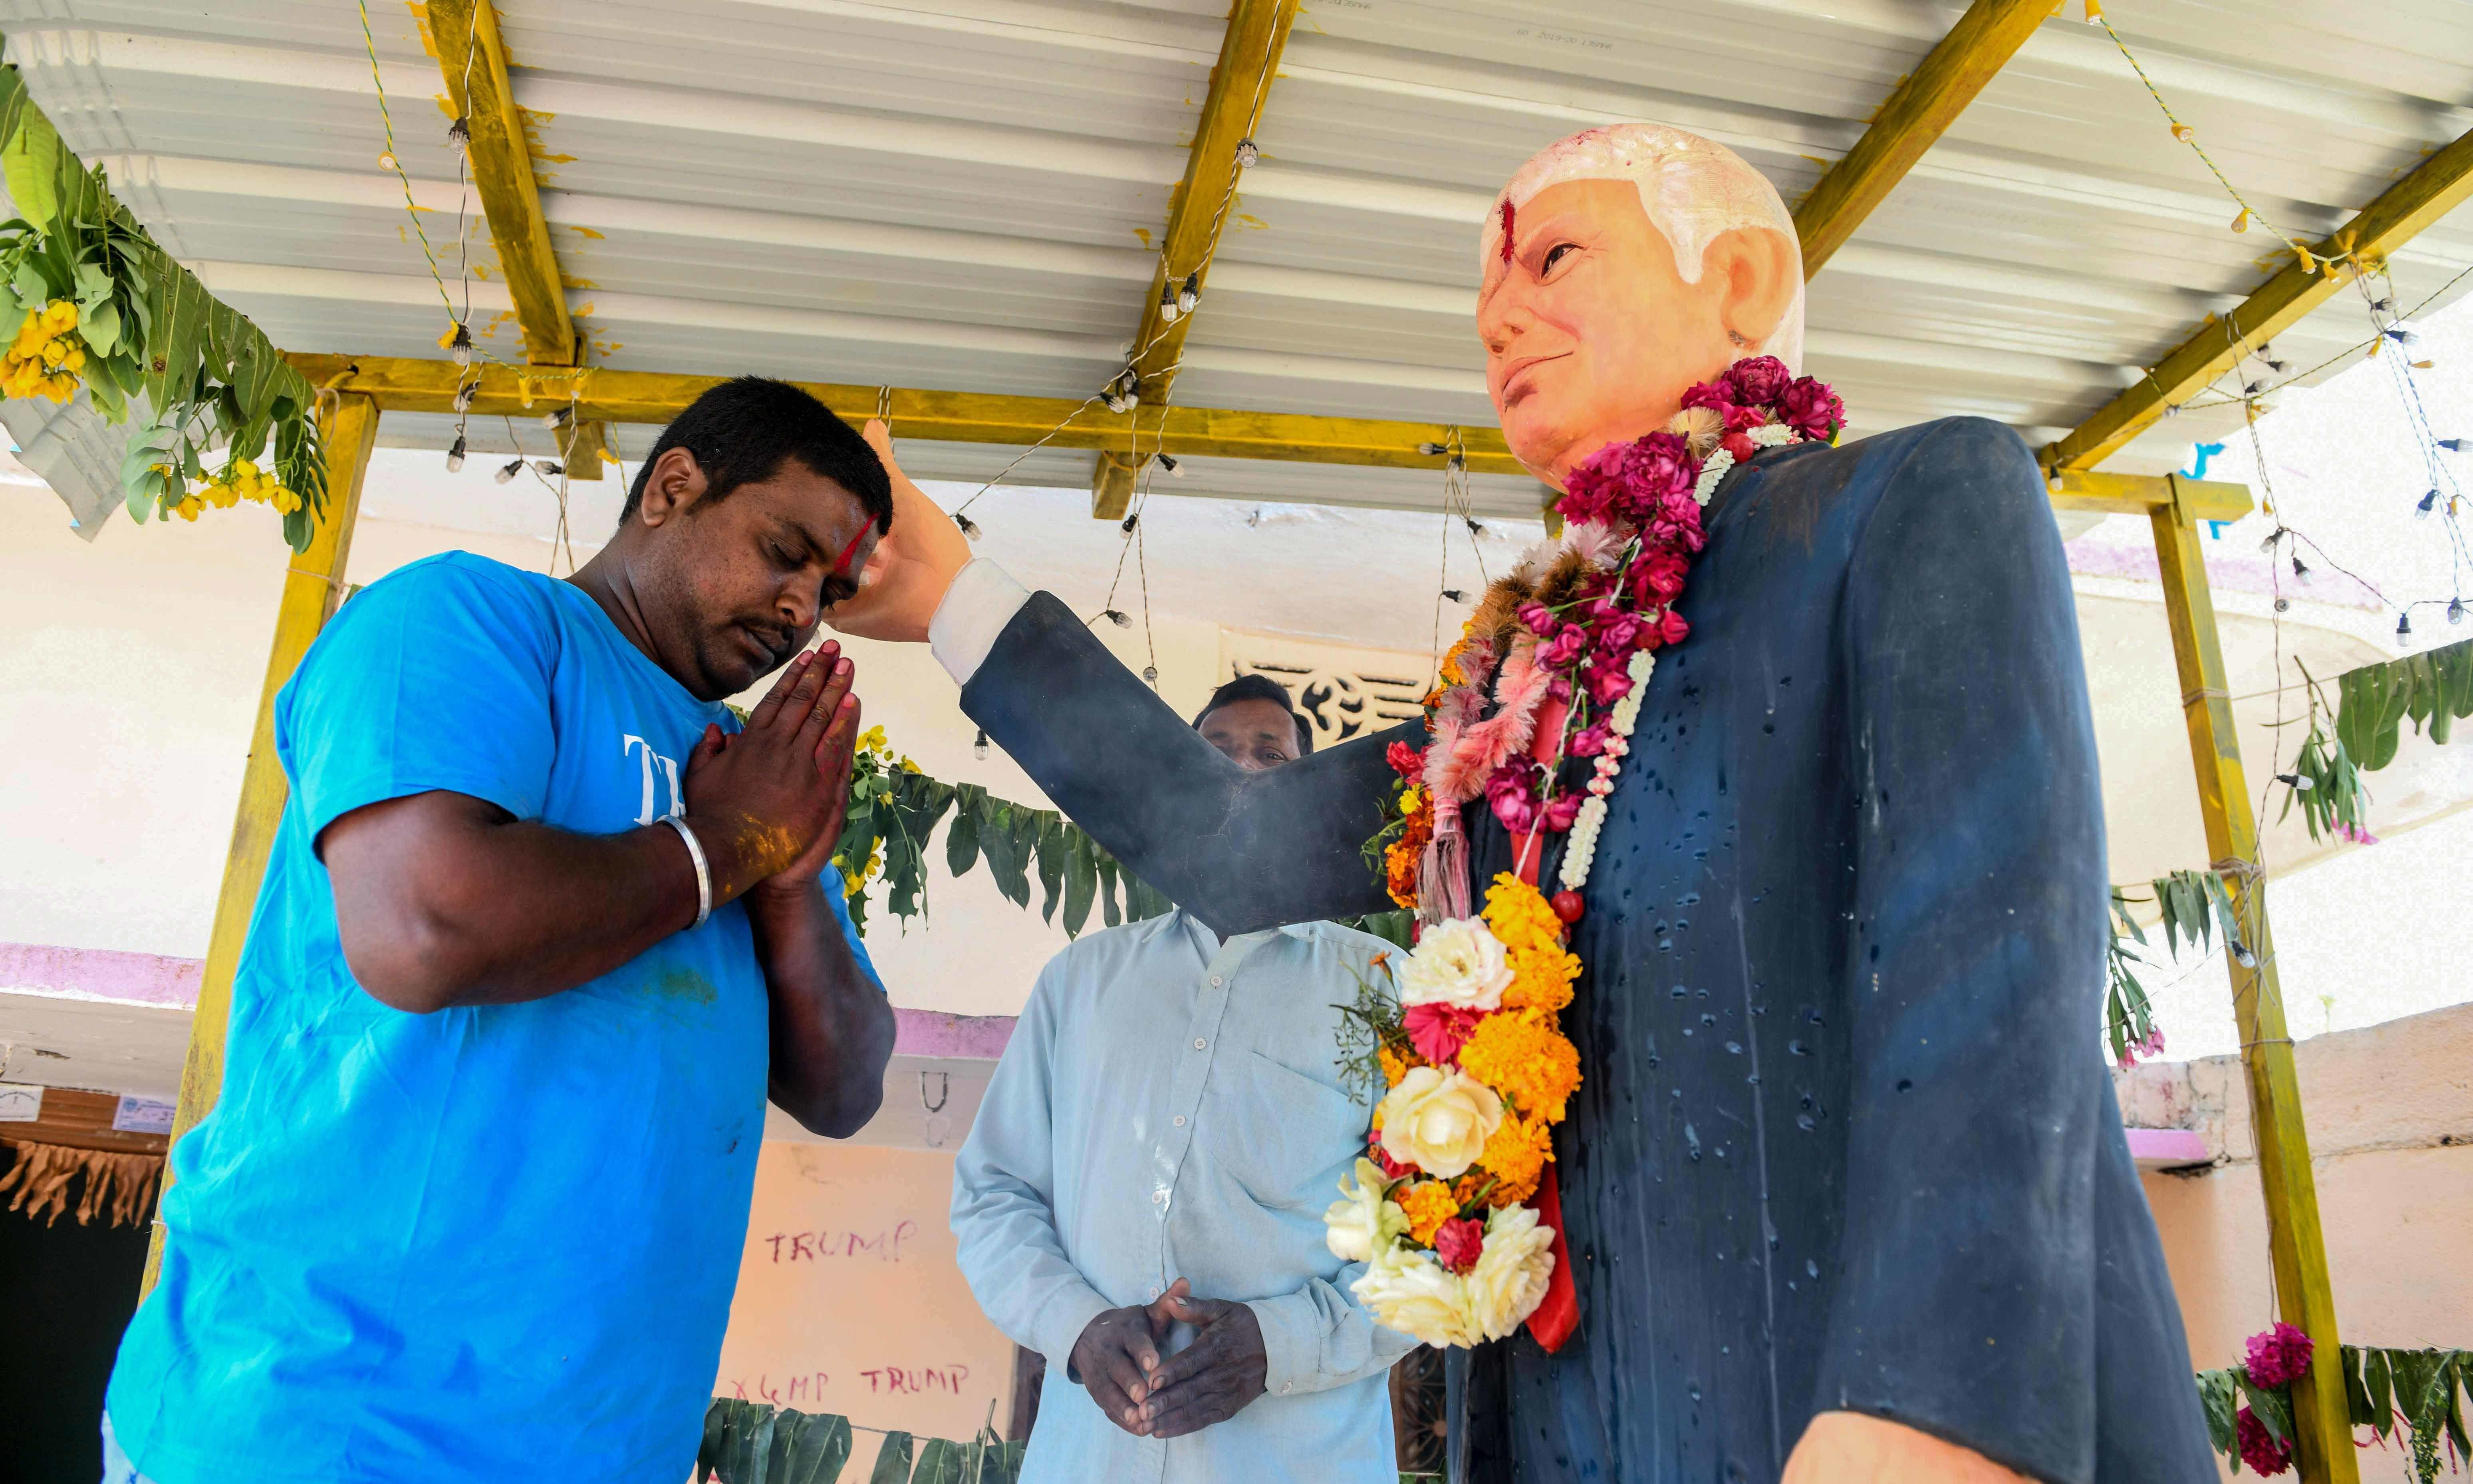 Die-hard Donald Trump fan Bussa Krishna is celebrating the visit of his hero to India next week the only way he knows how — offering prayers to a life-sized idol of the US president in his home. — AFP